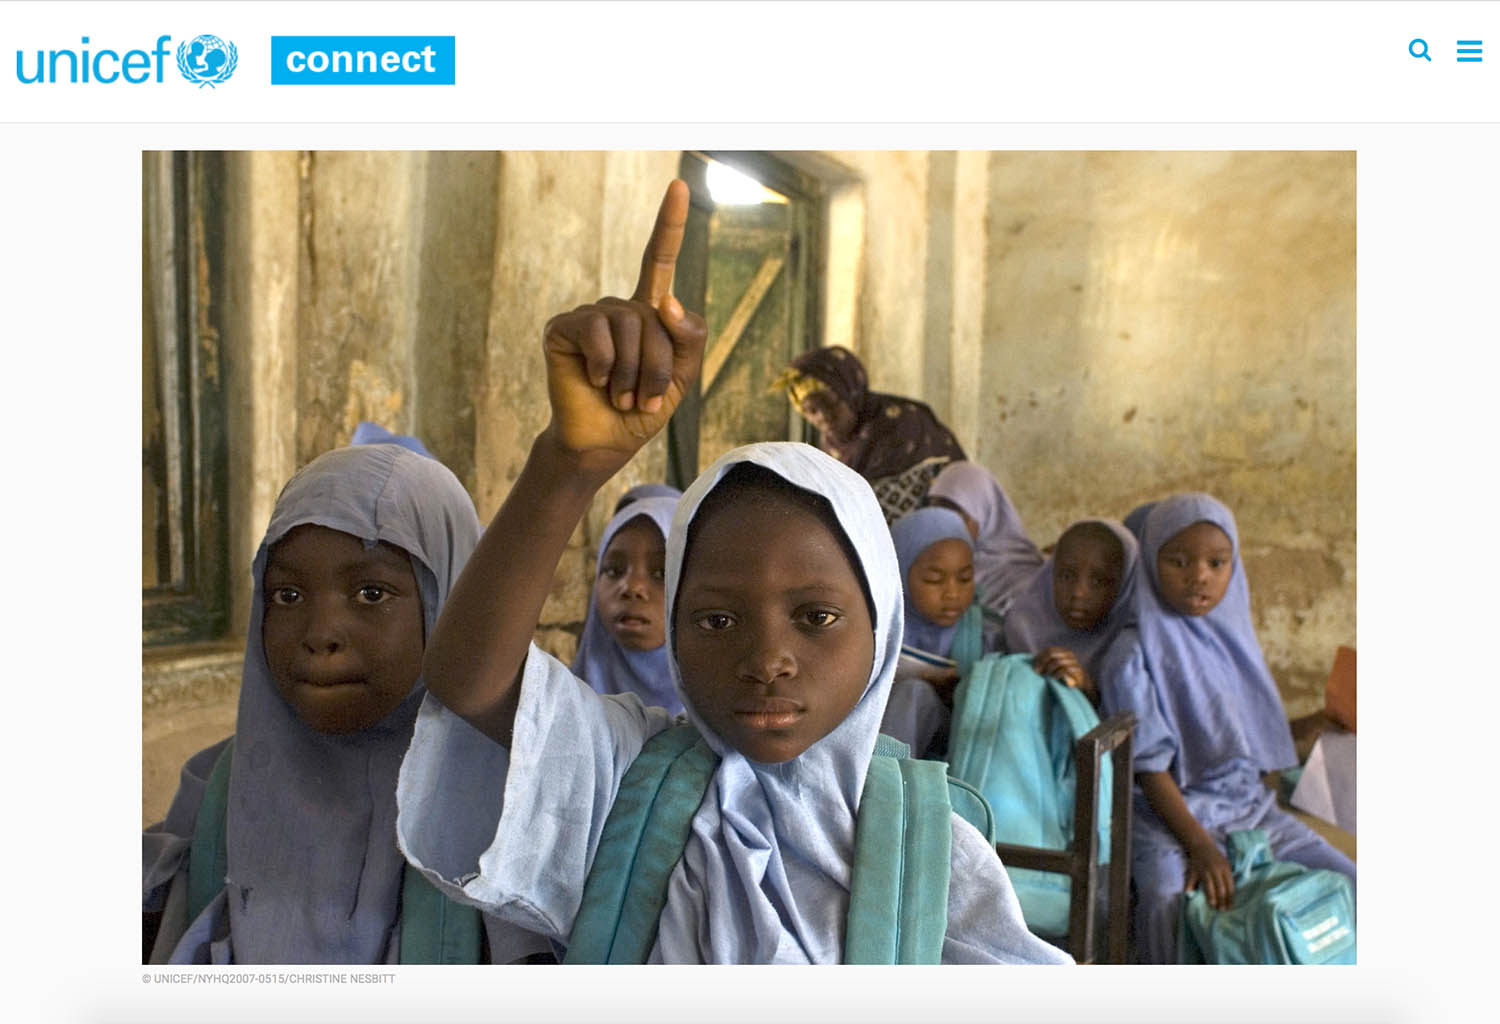 Screen capture showing a photograph of Nigerian schoolgirls, one raising her hand in the foreground.